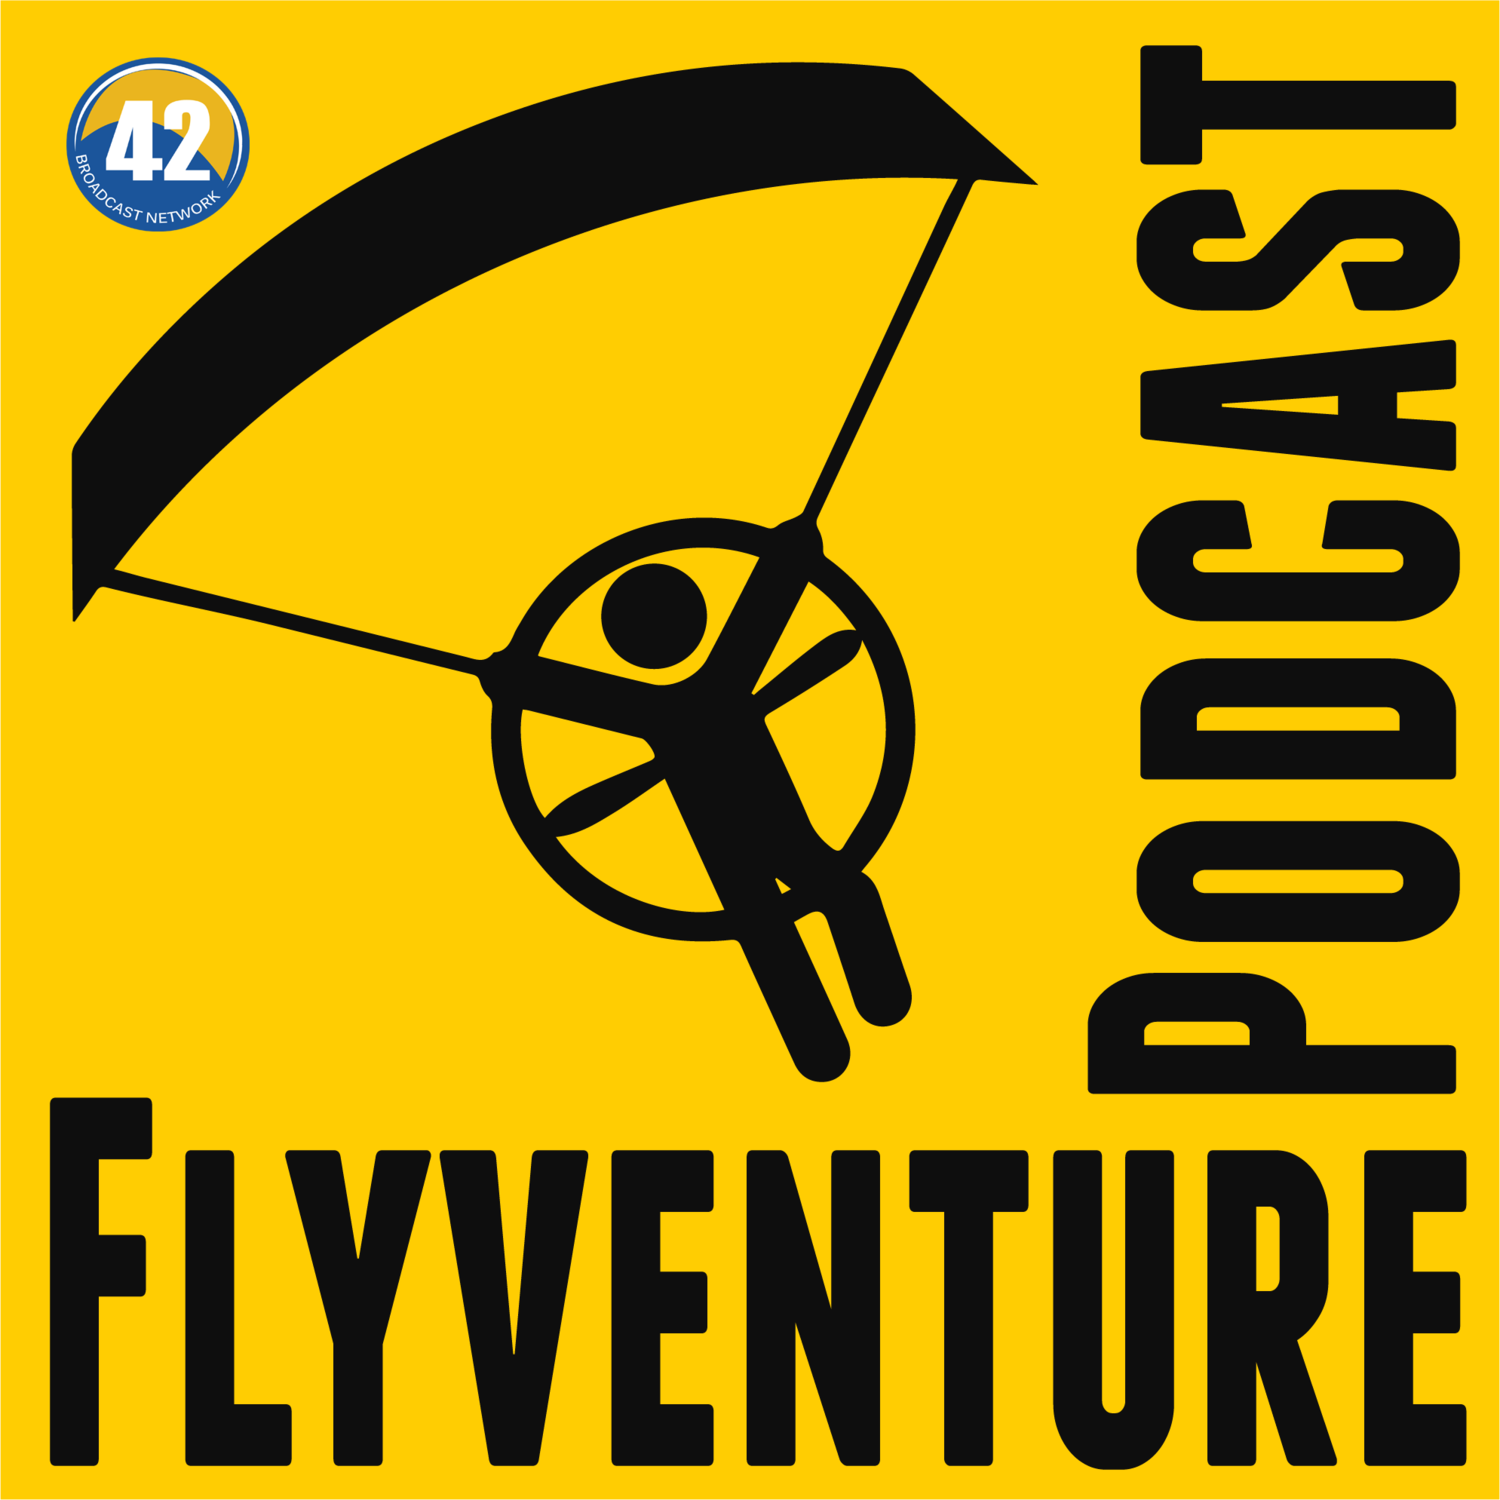 Flyventure Podcast - 42 Broadcast Network